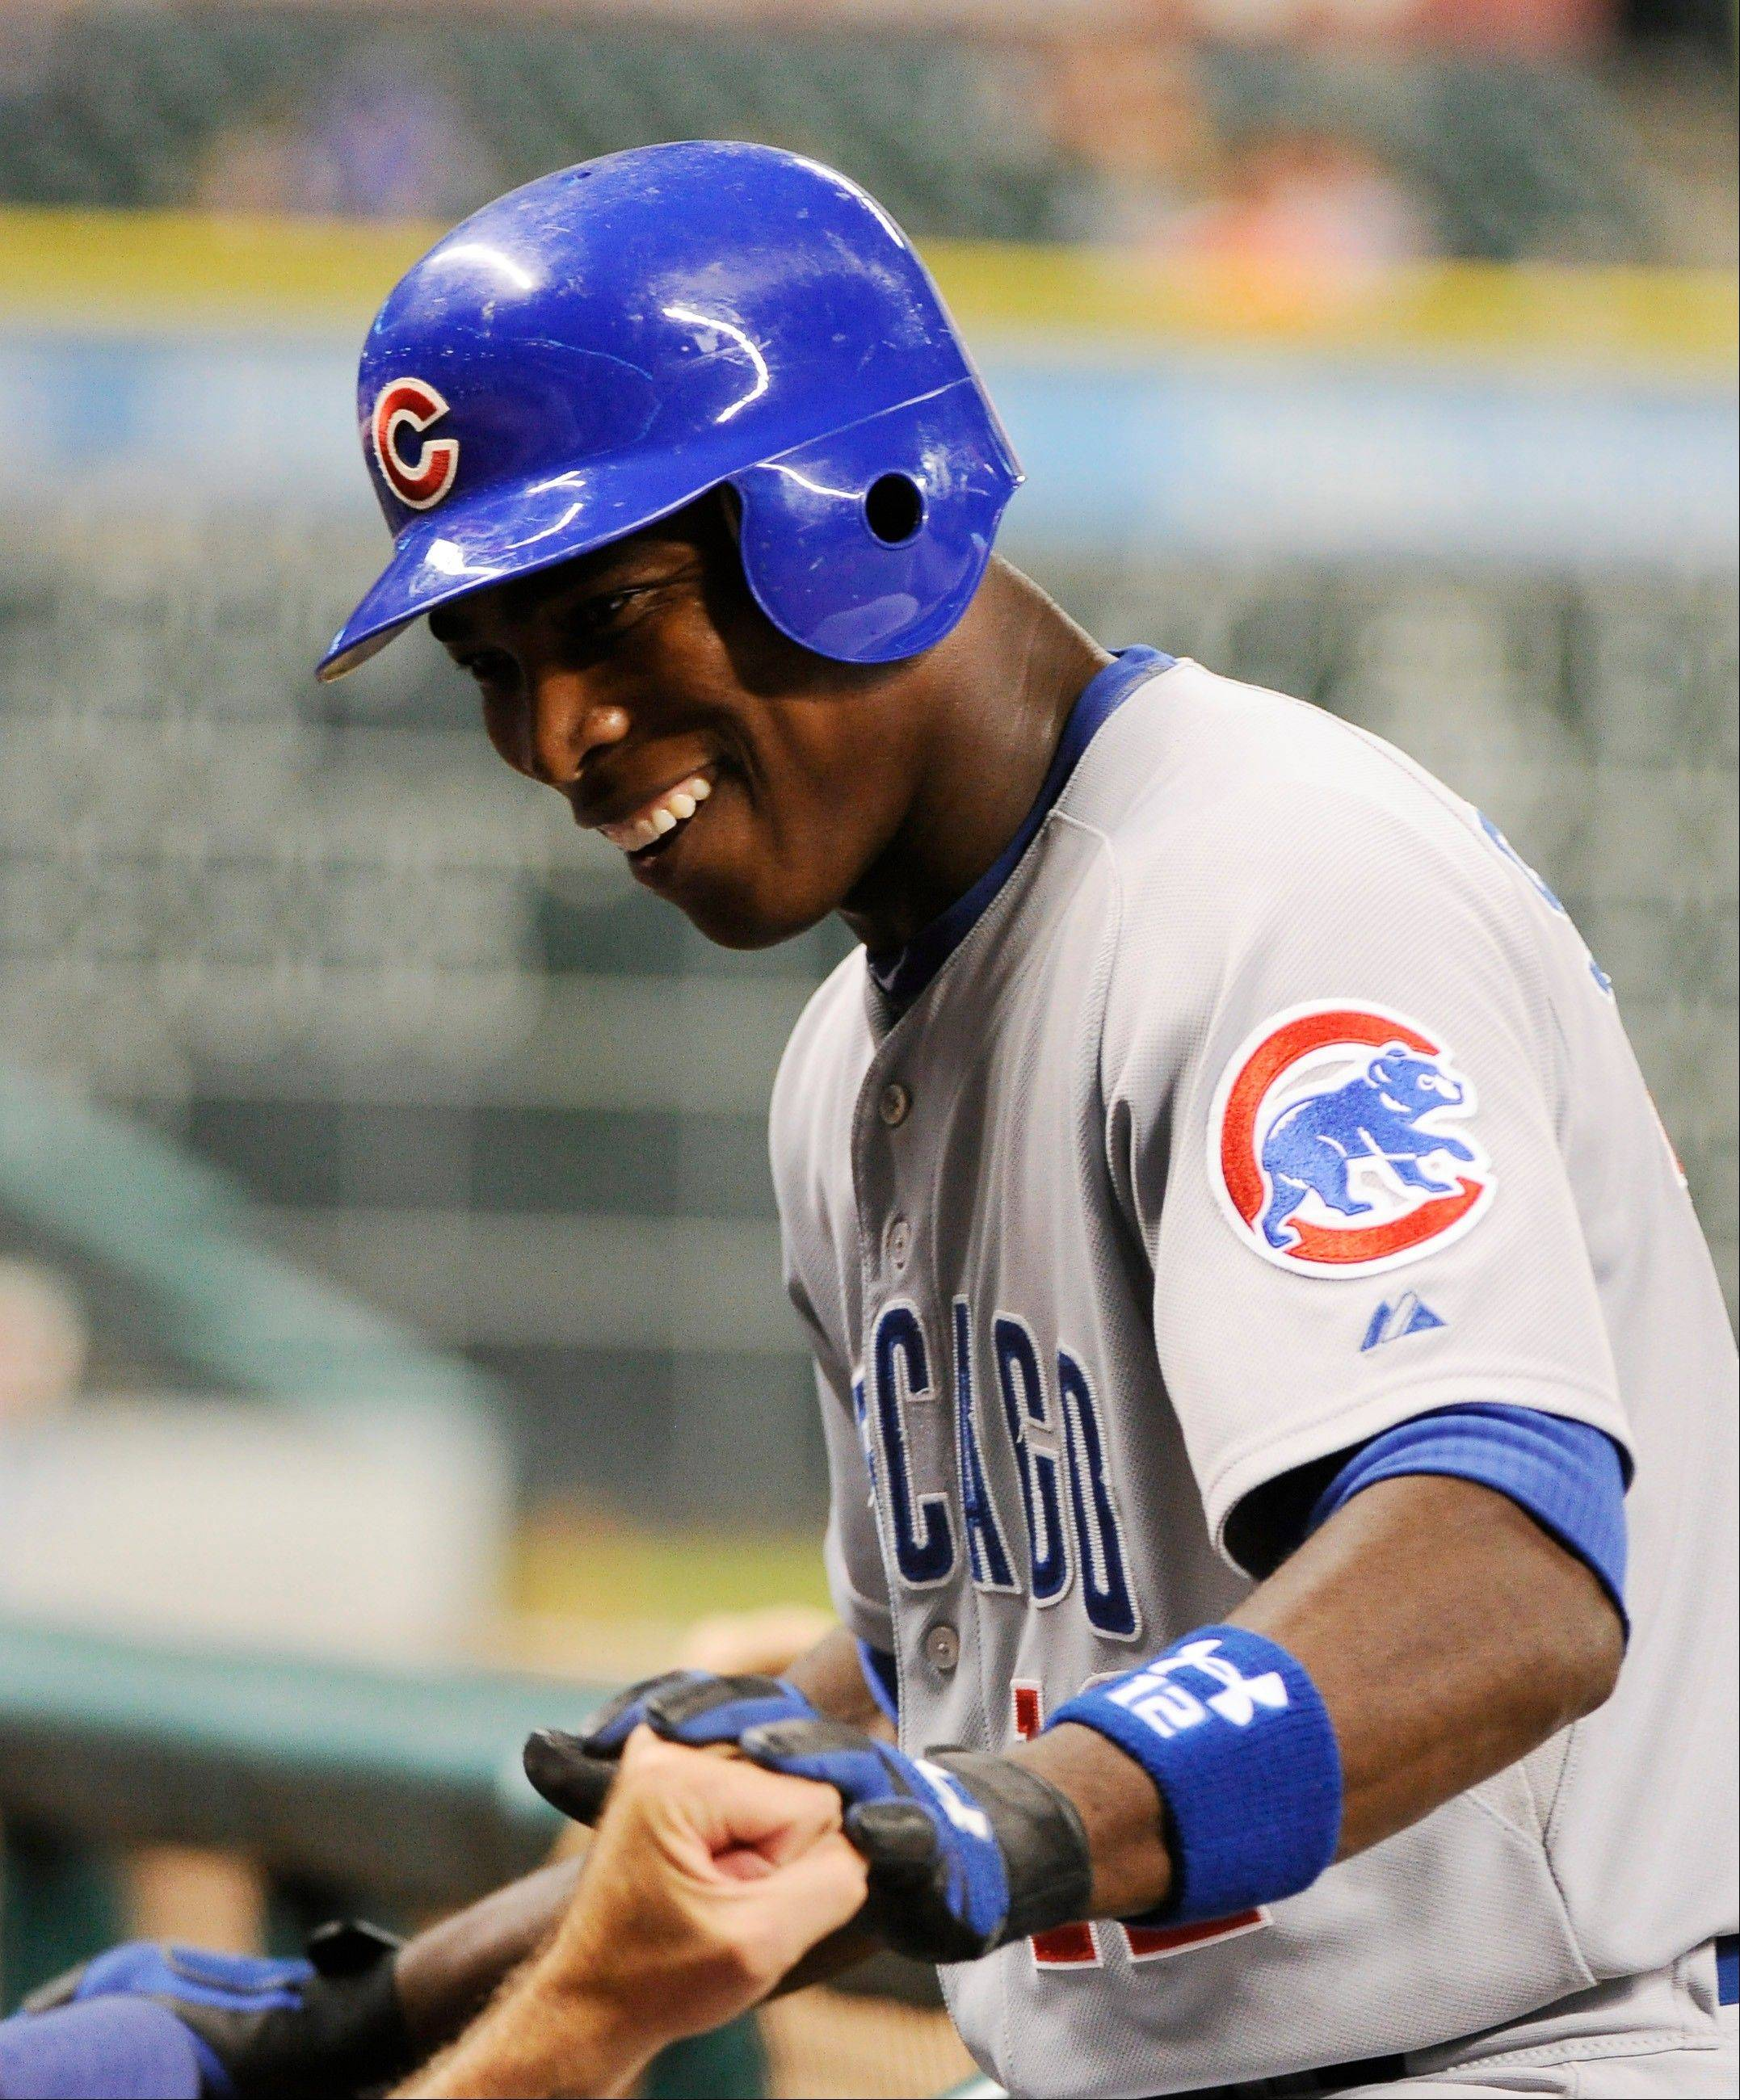 One good thing: Cubs haven't quit on Sveum